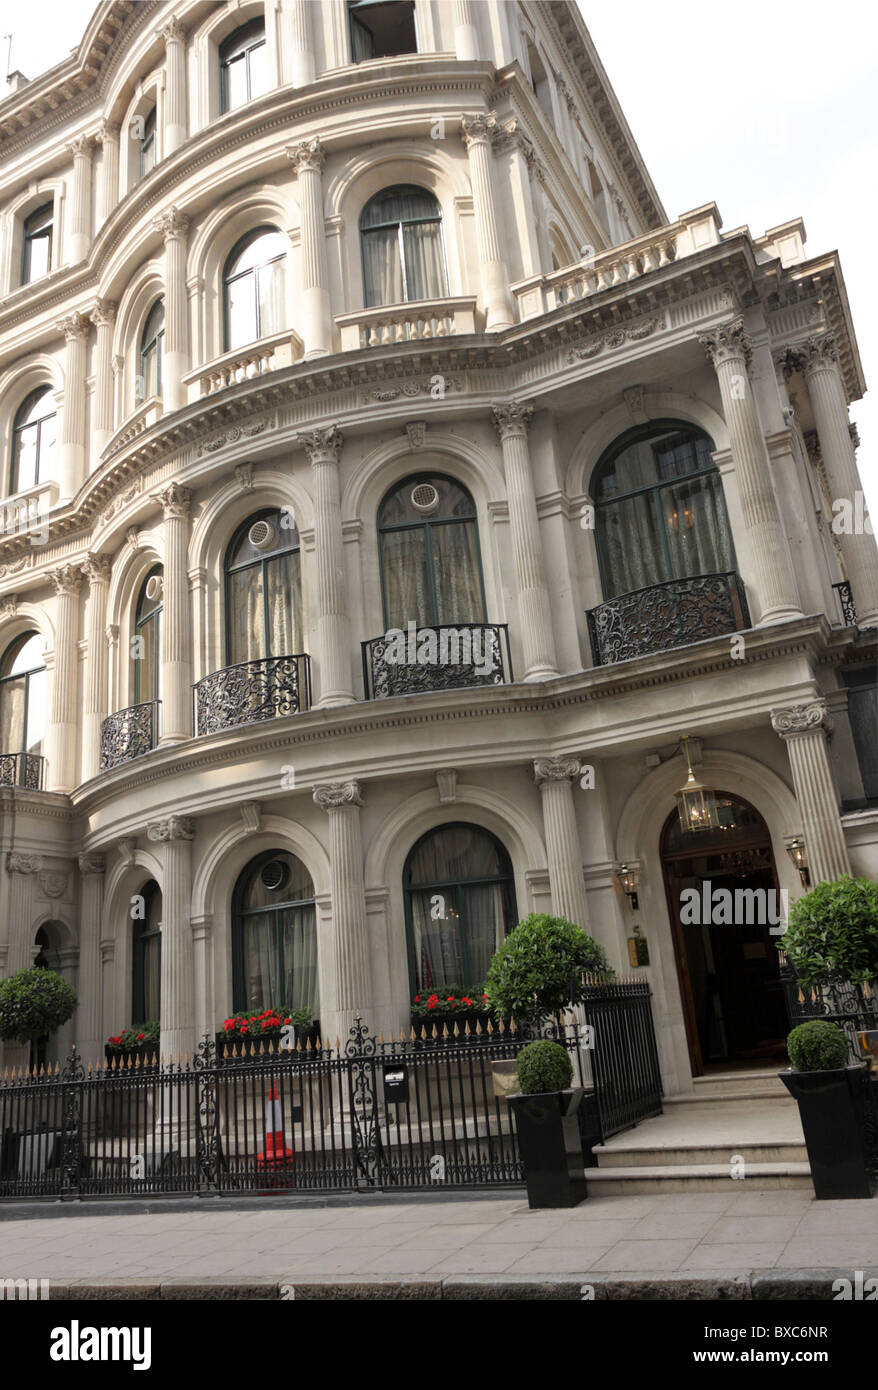 Les Ambassadeurs Club,an exclusive private members club situated in Hamilton Place near Hyde Park Corner. - Stock Image